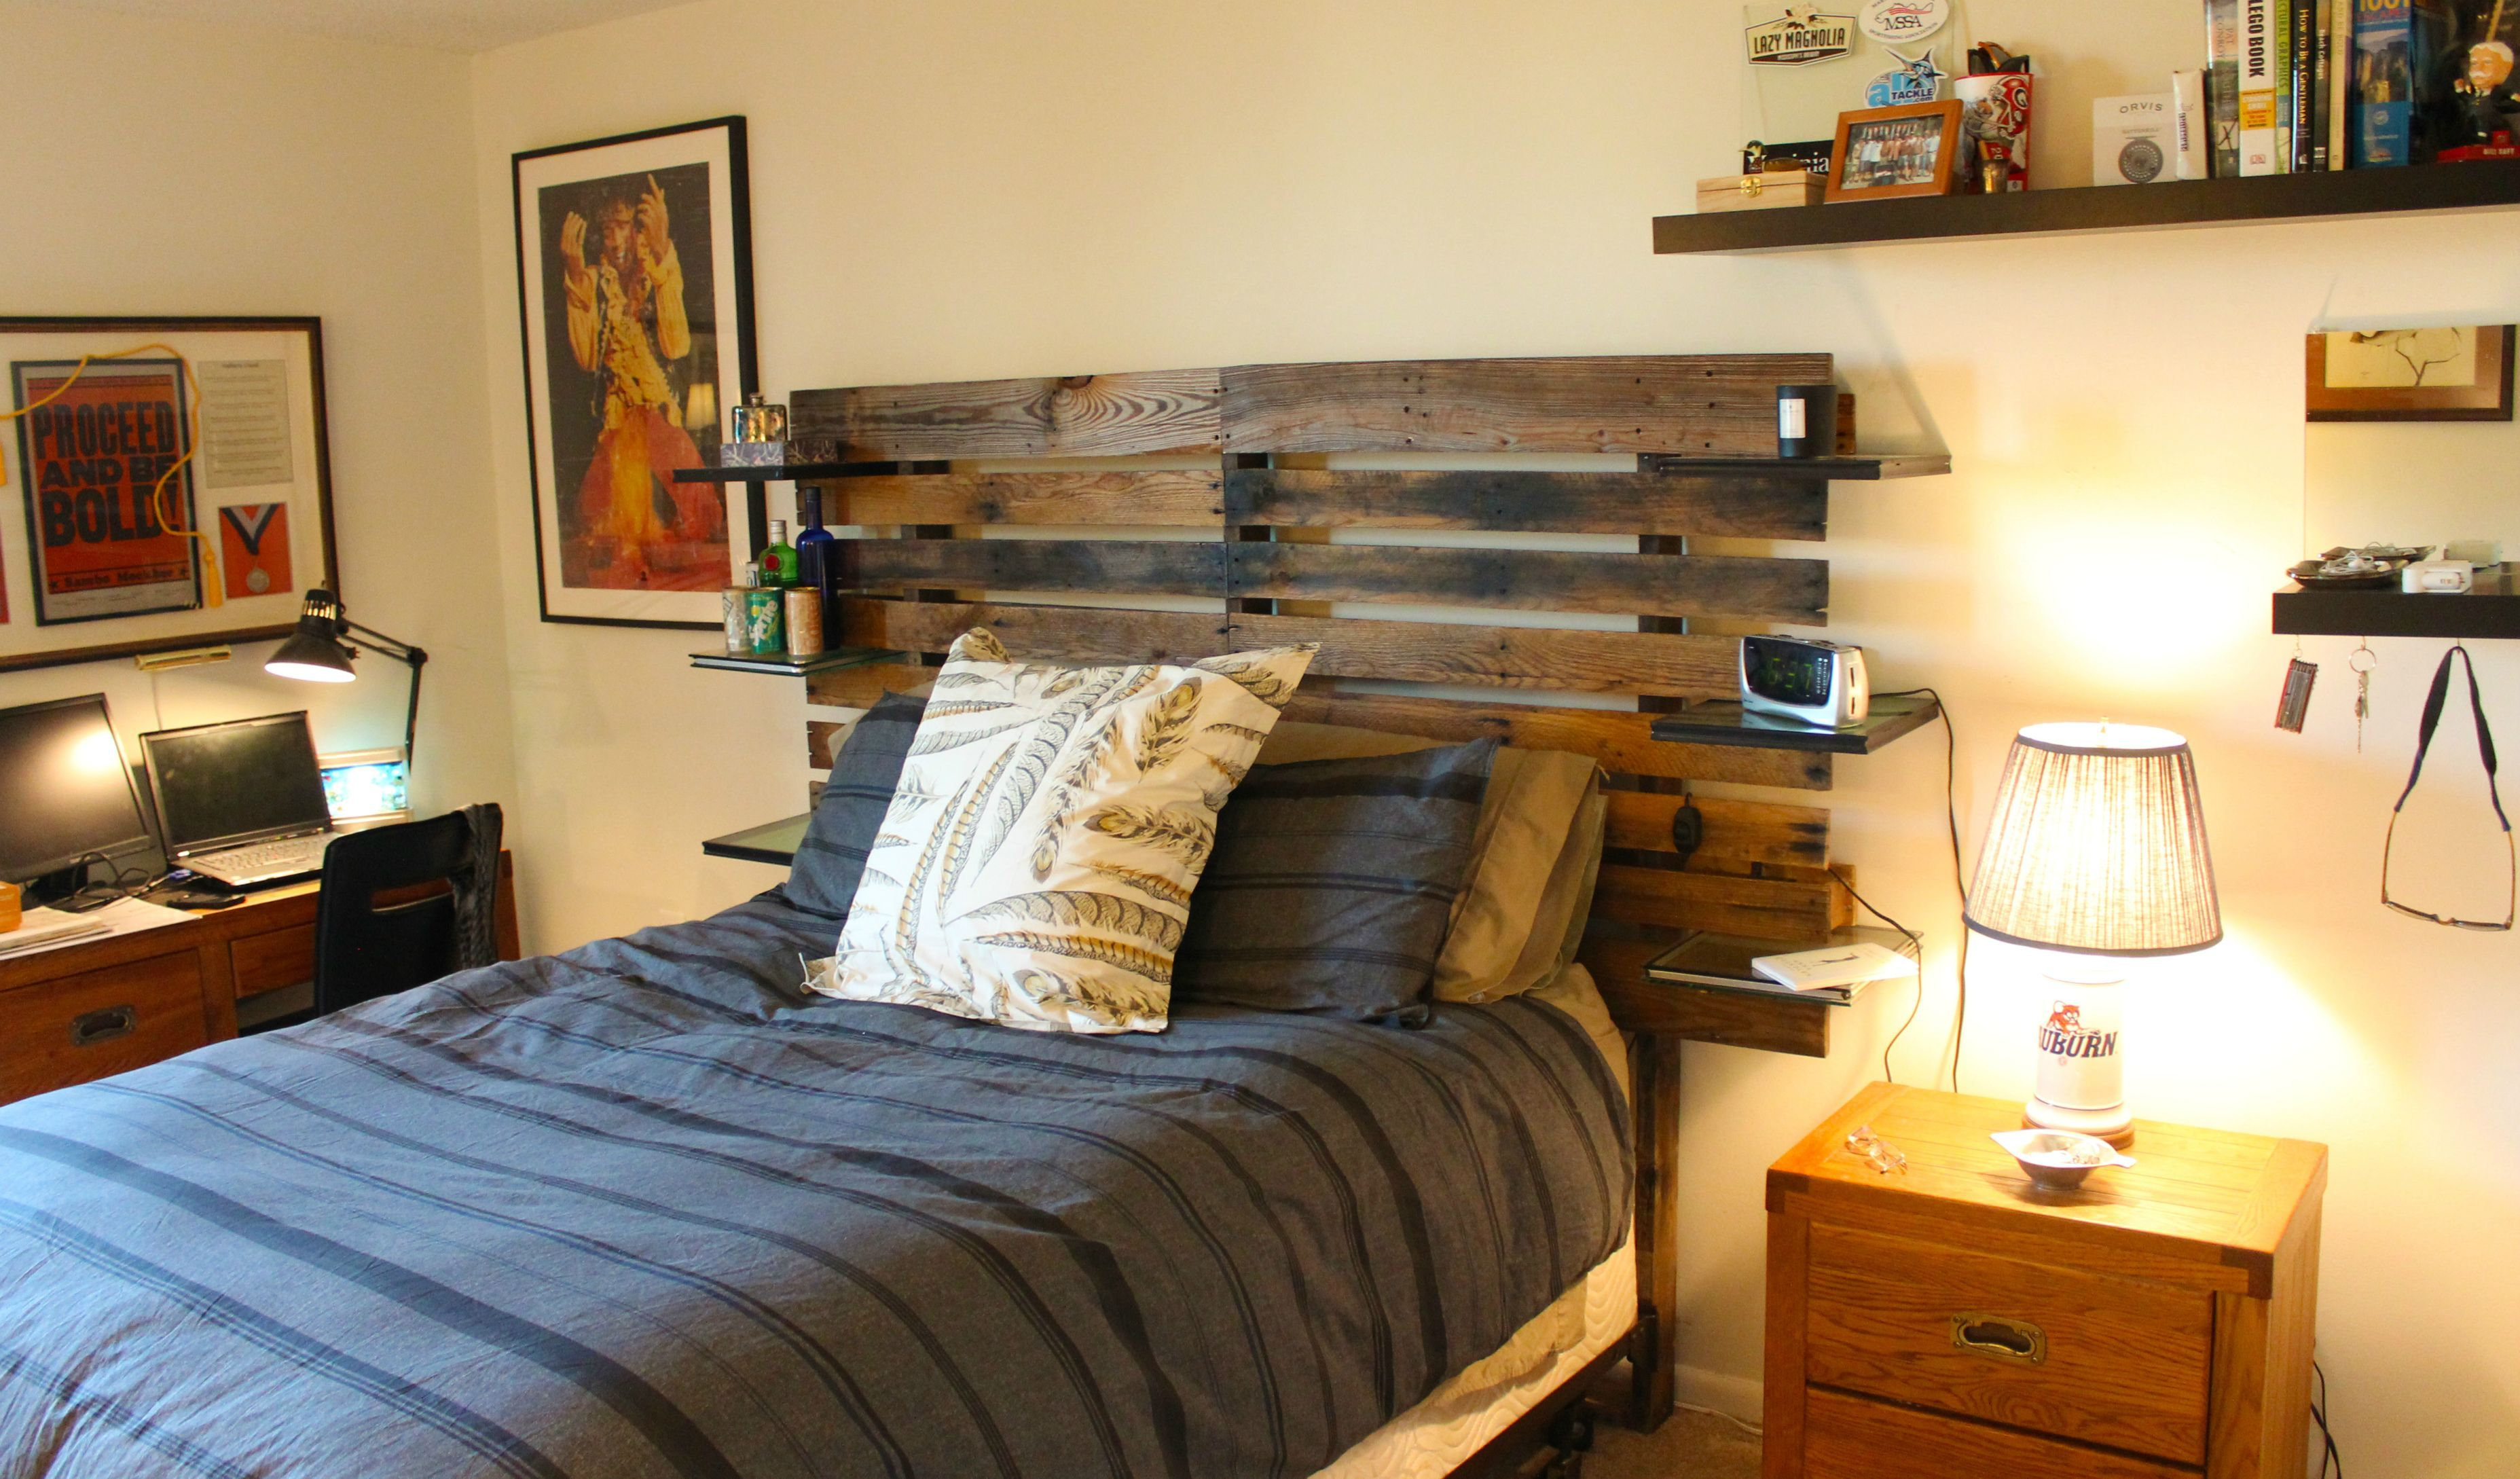 Built A Headboard For My Bed Out Of Reused Pallet Wood Led Lights And Architectural Glass Samples Pallet Wood Headboard Pallet Wood Headboard Diy Pallet Headboard